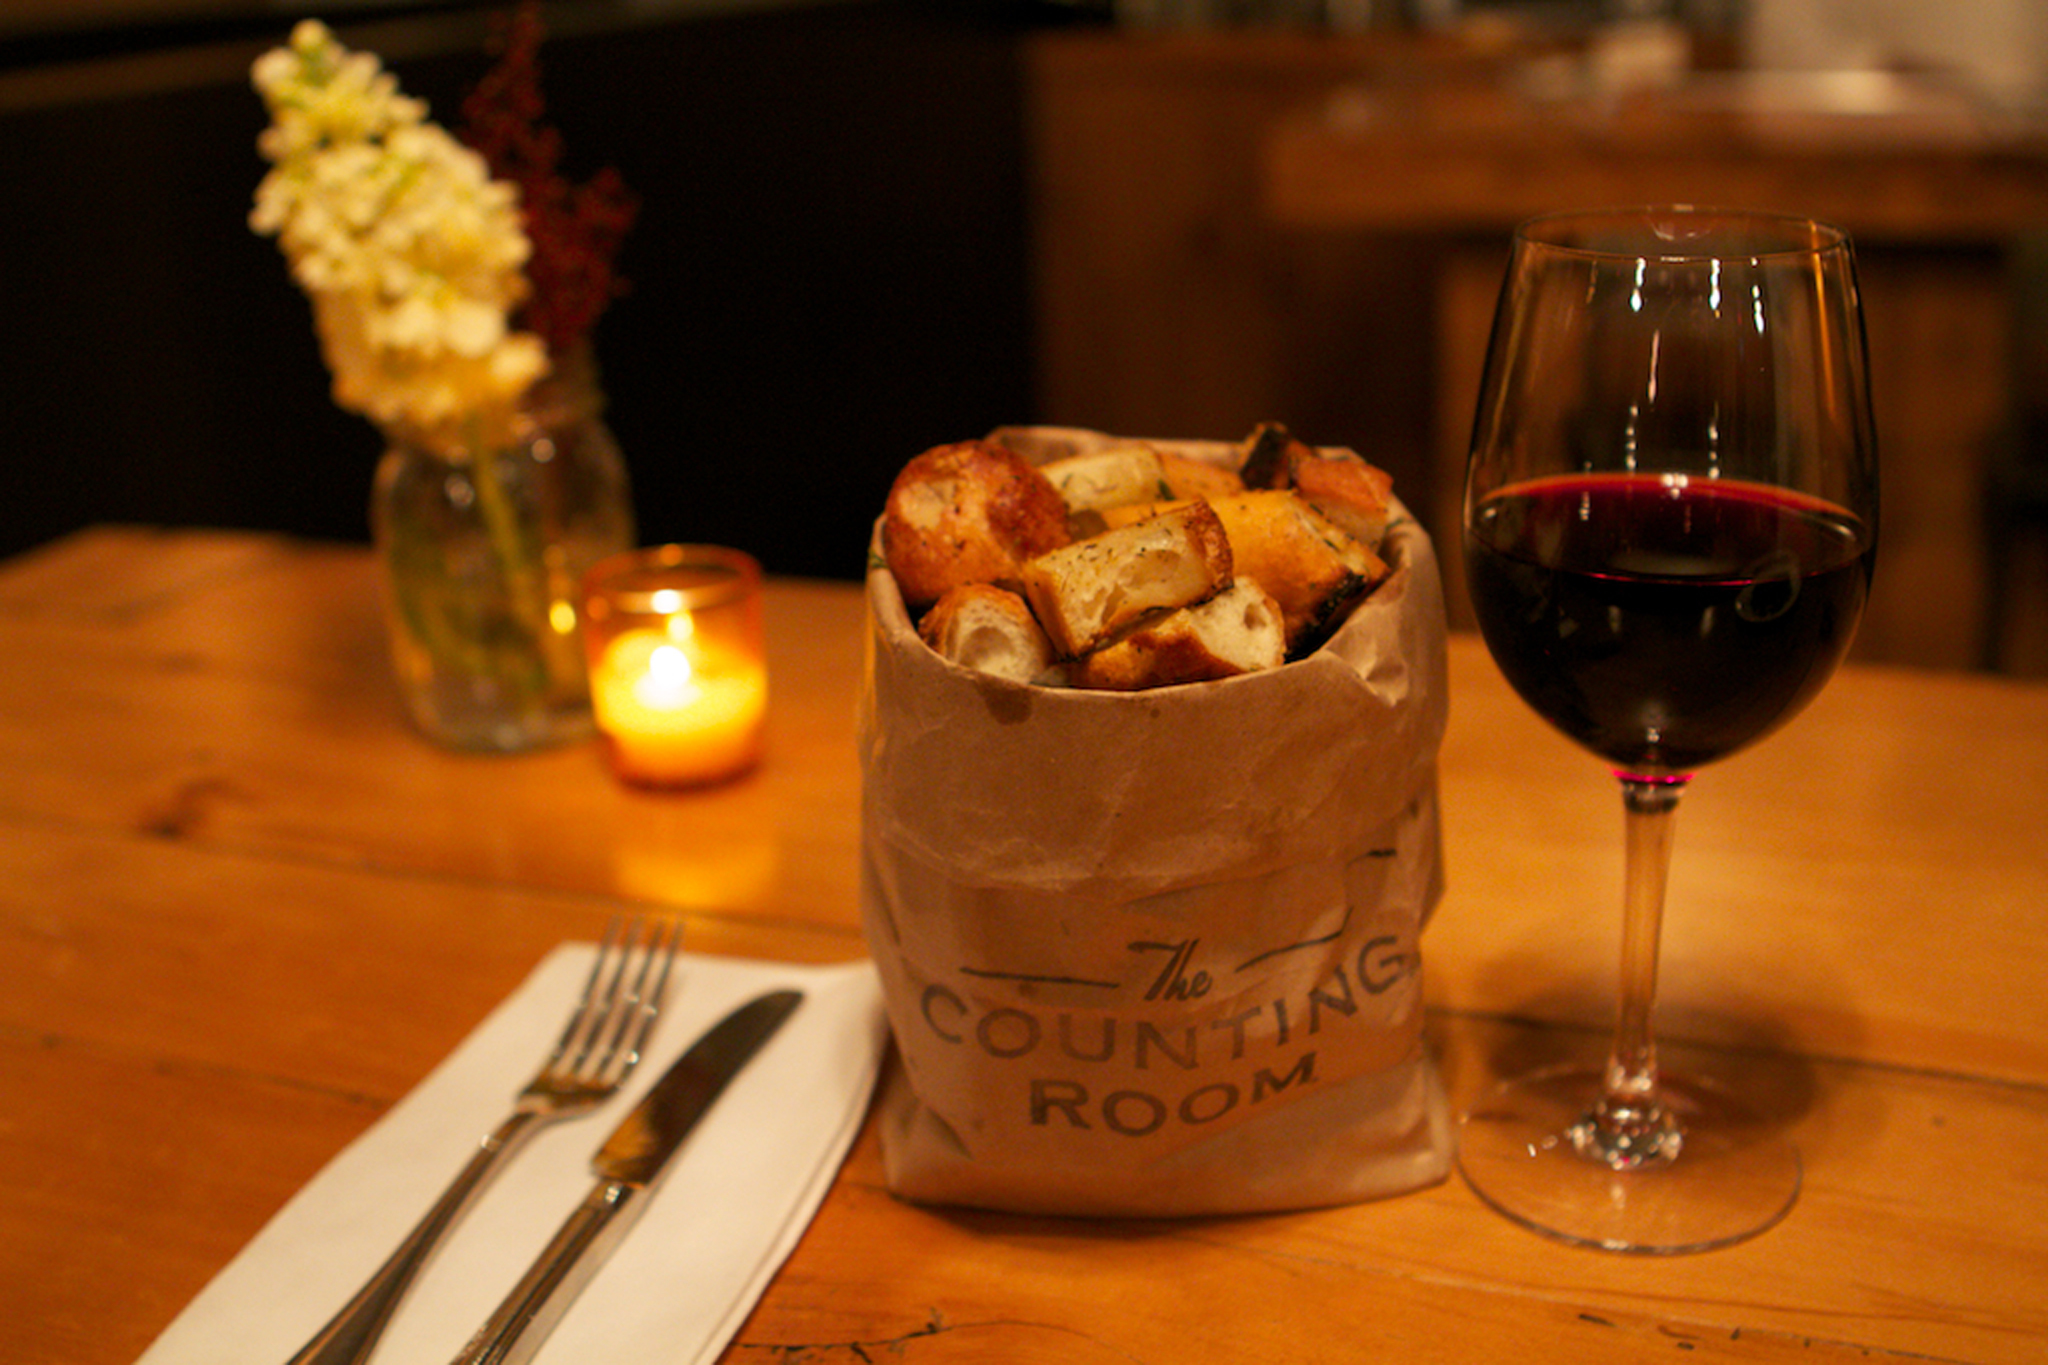 Warm bag of croutons at the Counting Room